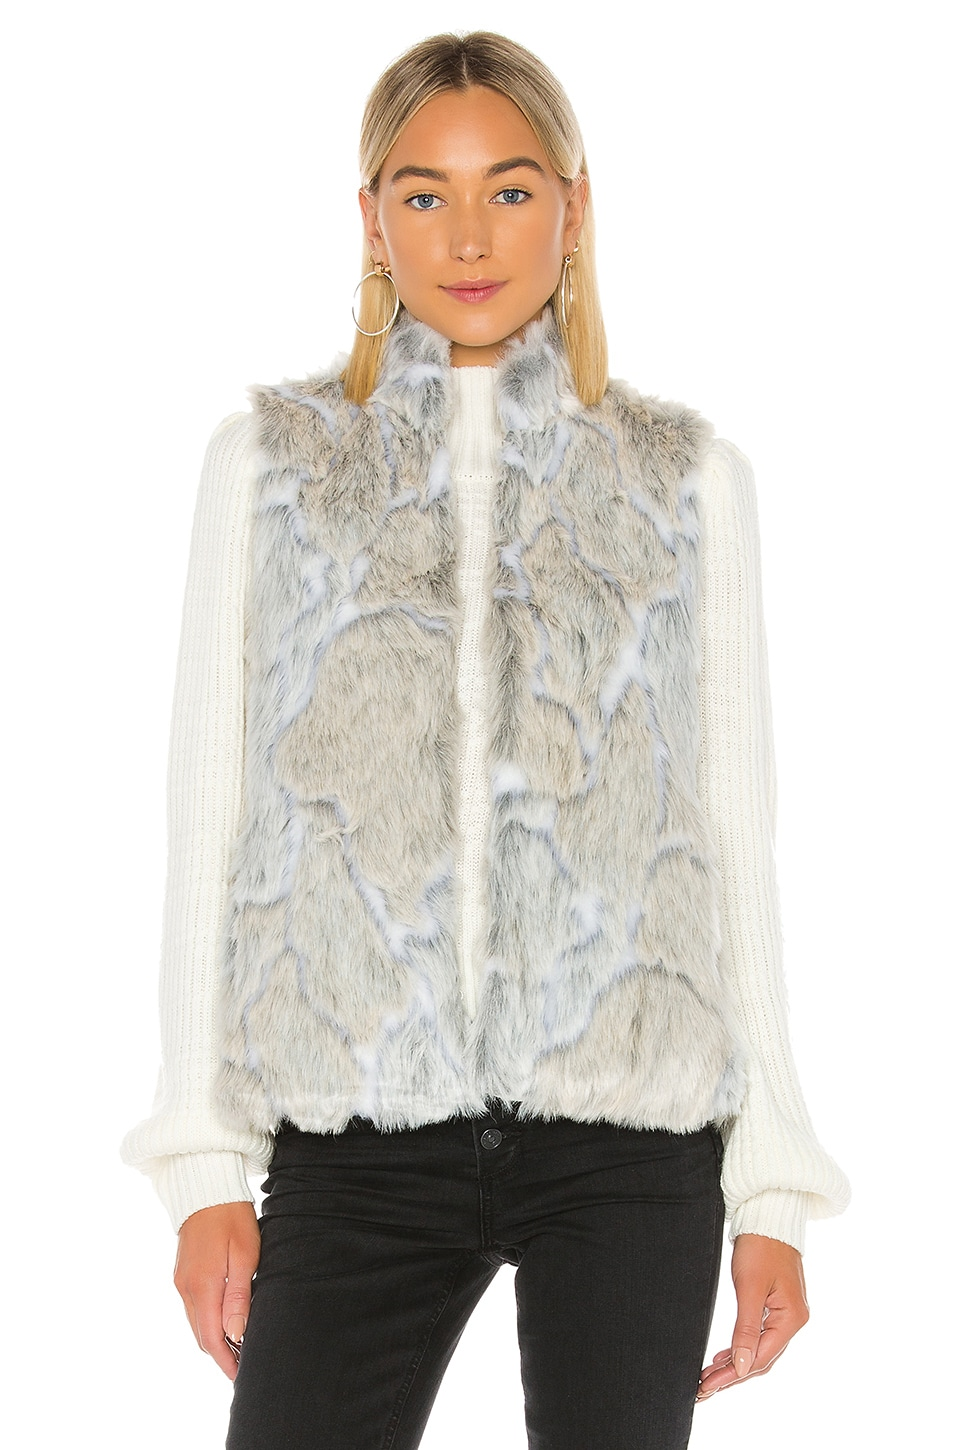 BB Dakota In A Furry Faux Fur Vest in Ivory